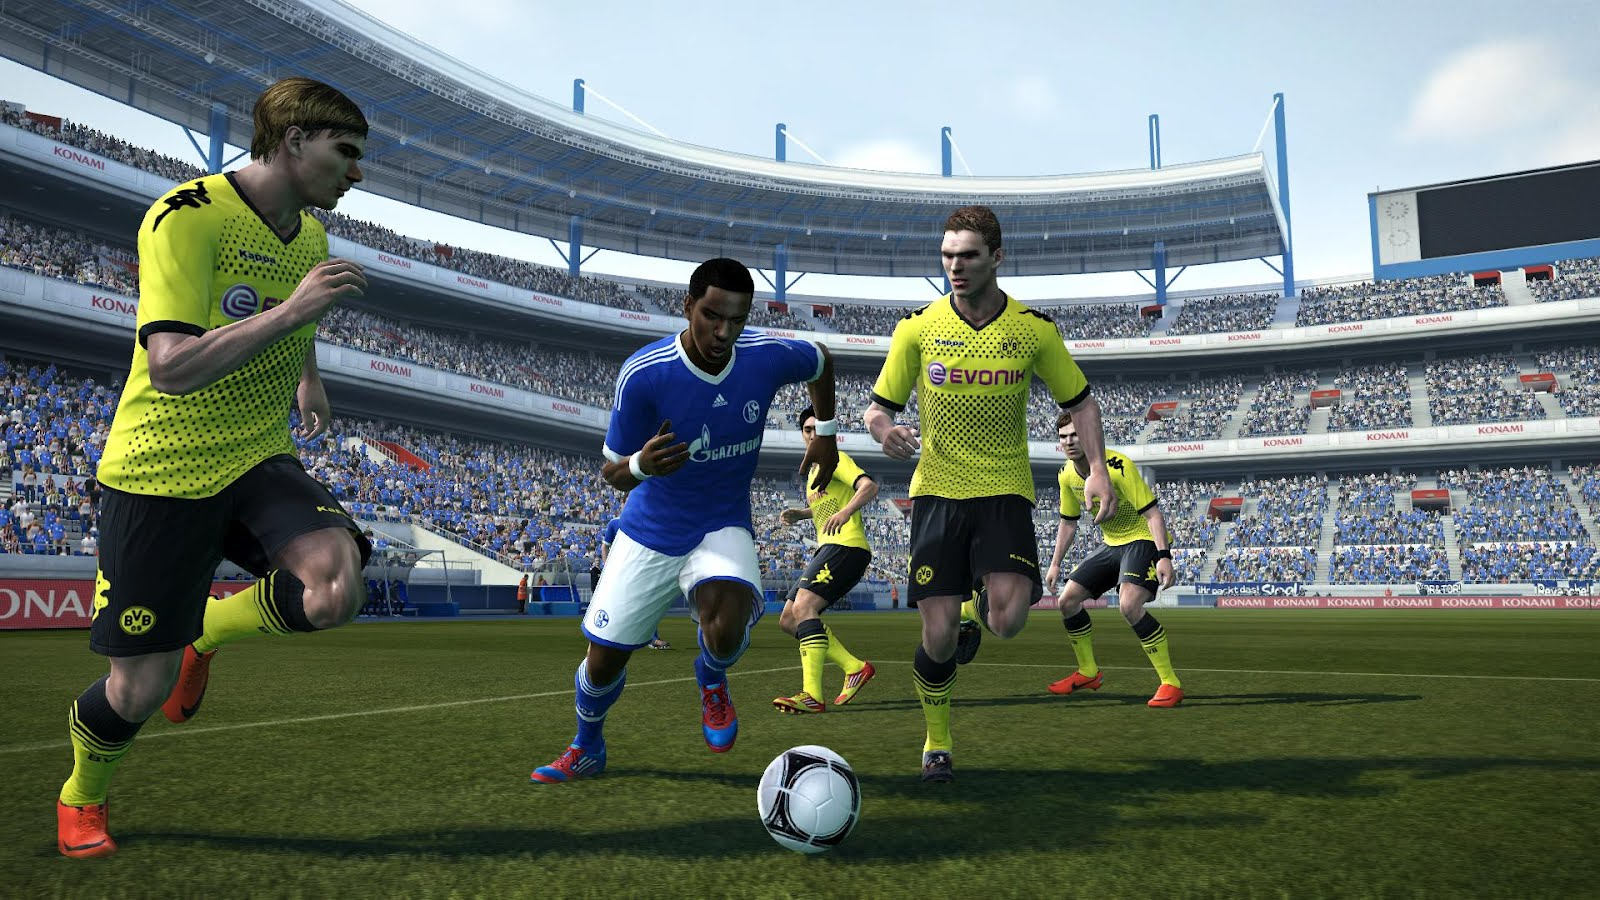 Pes 2012 Patch Download Free - saudiopen's blog